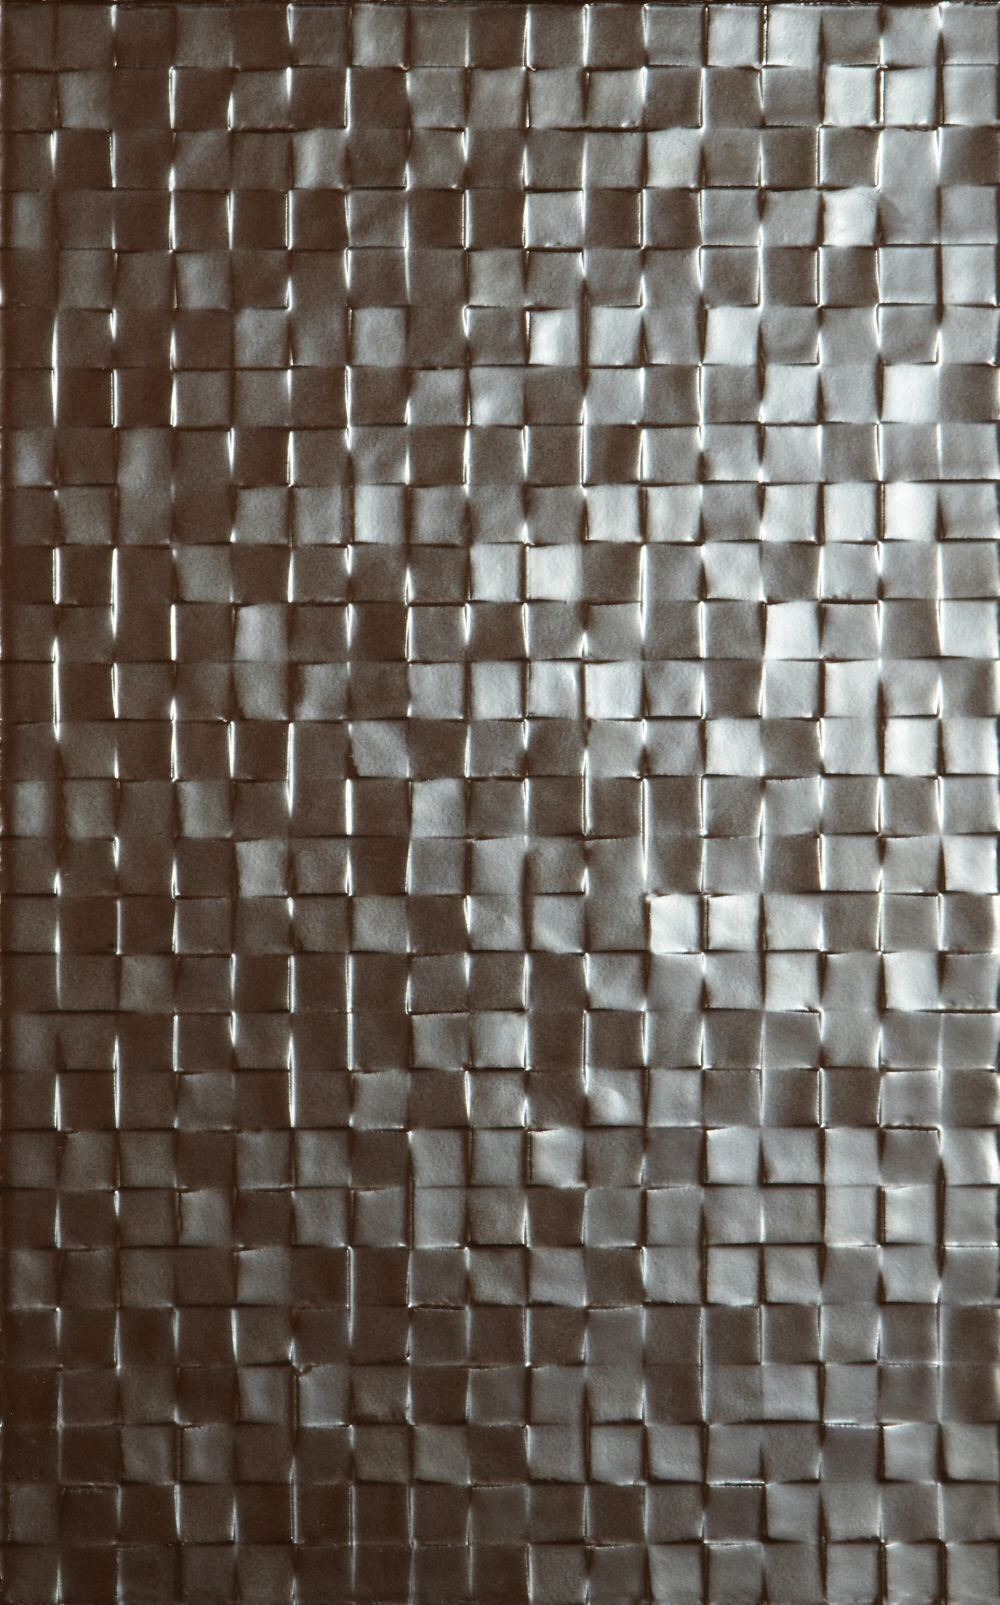 metallic mosaic effect wall tile hartland (tactile studio conran